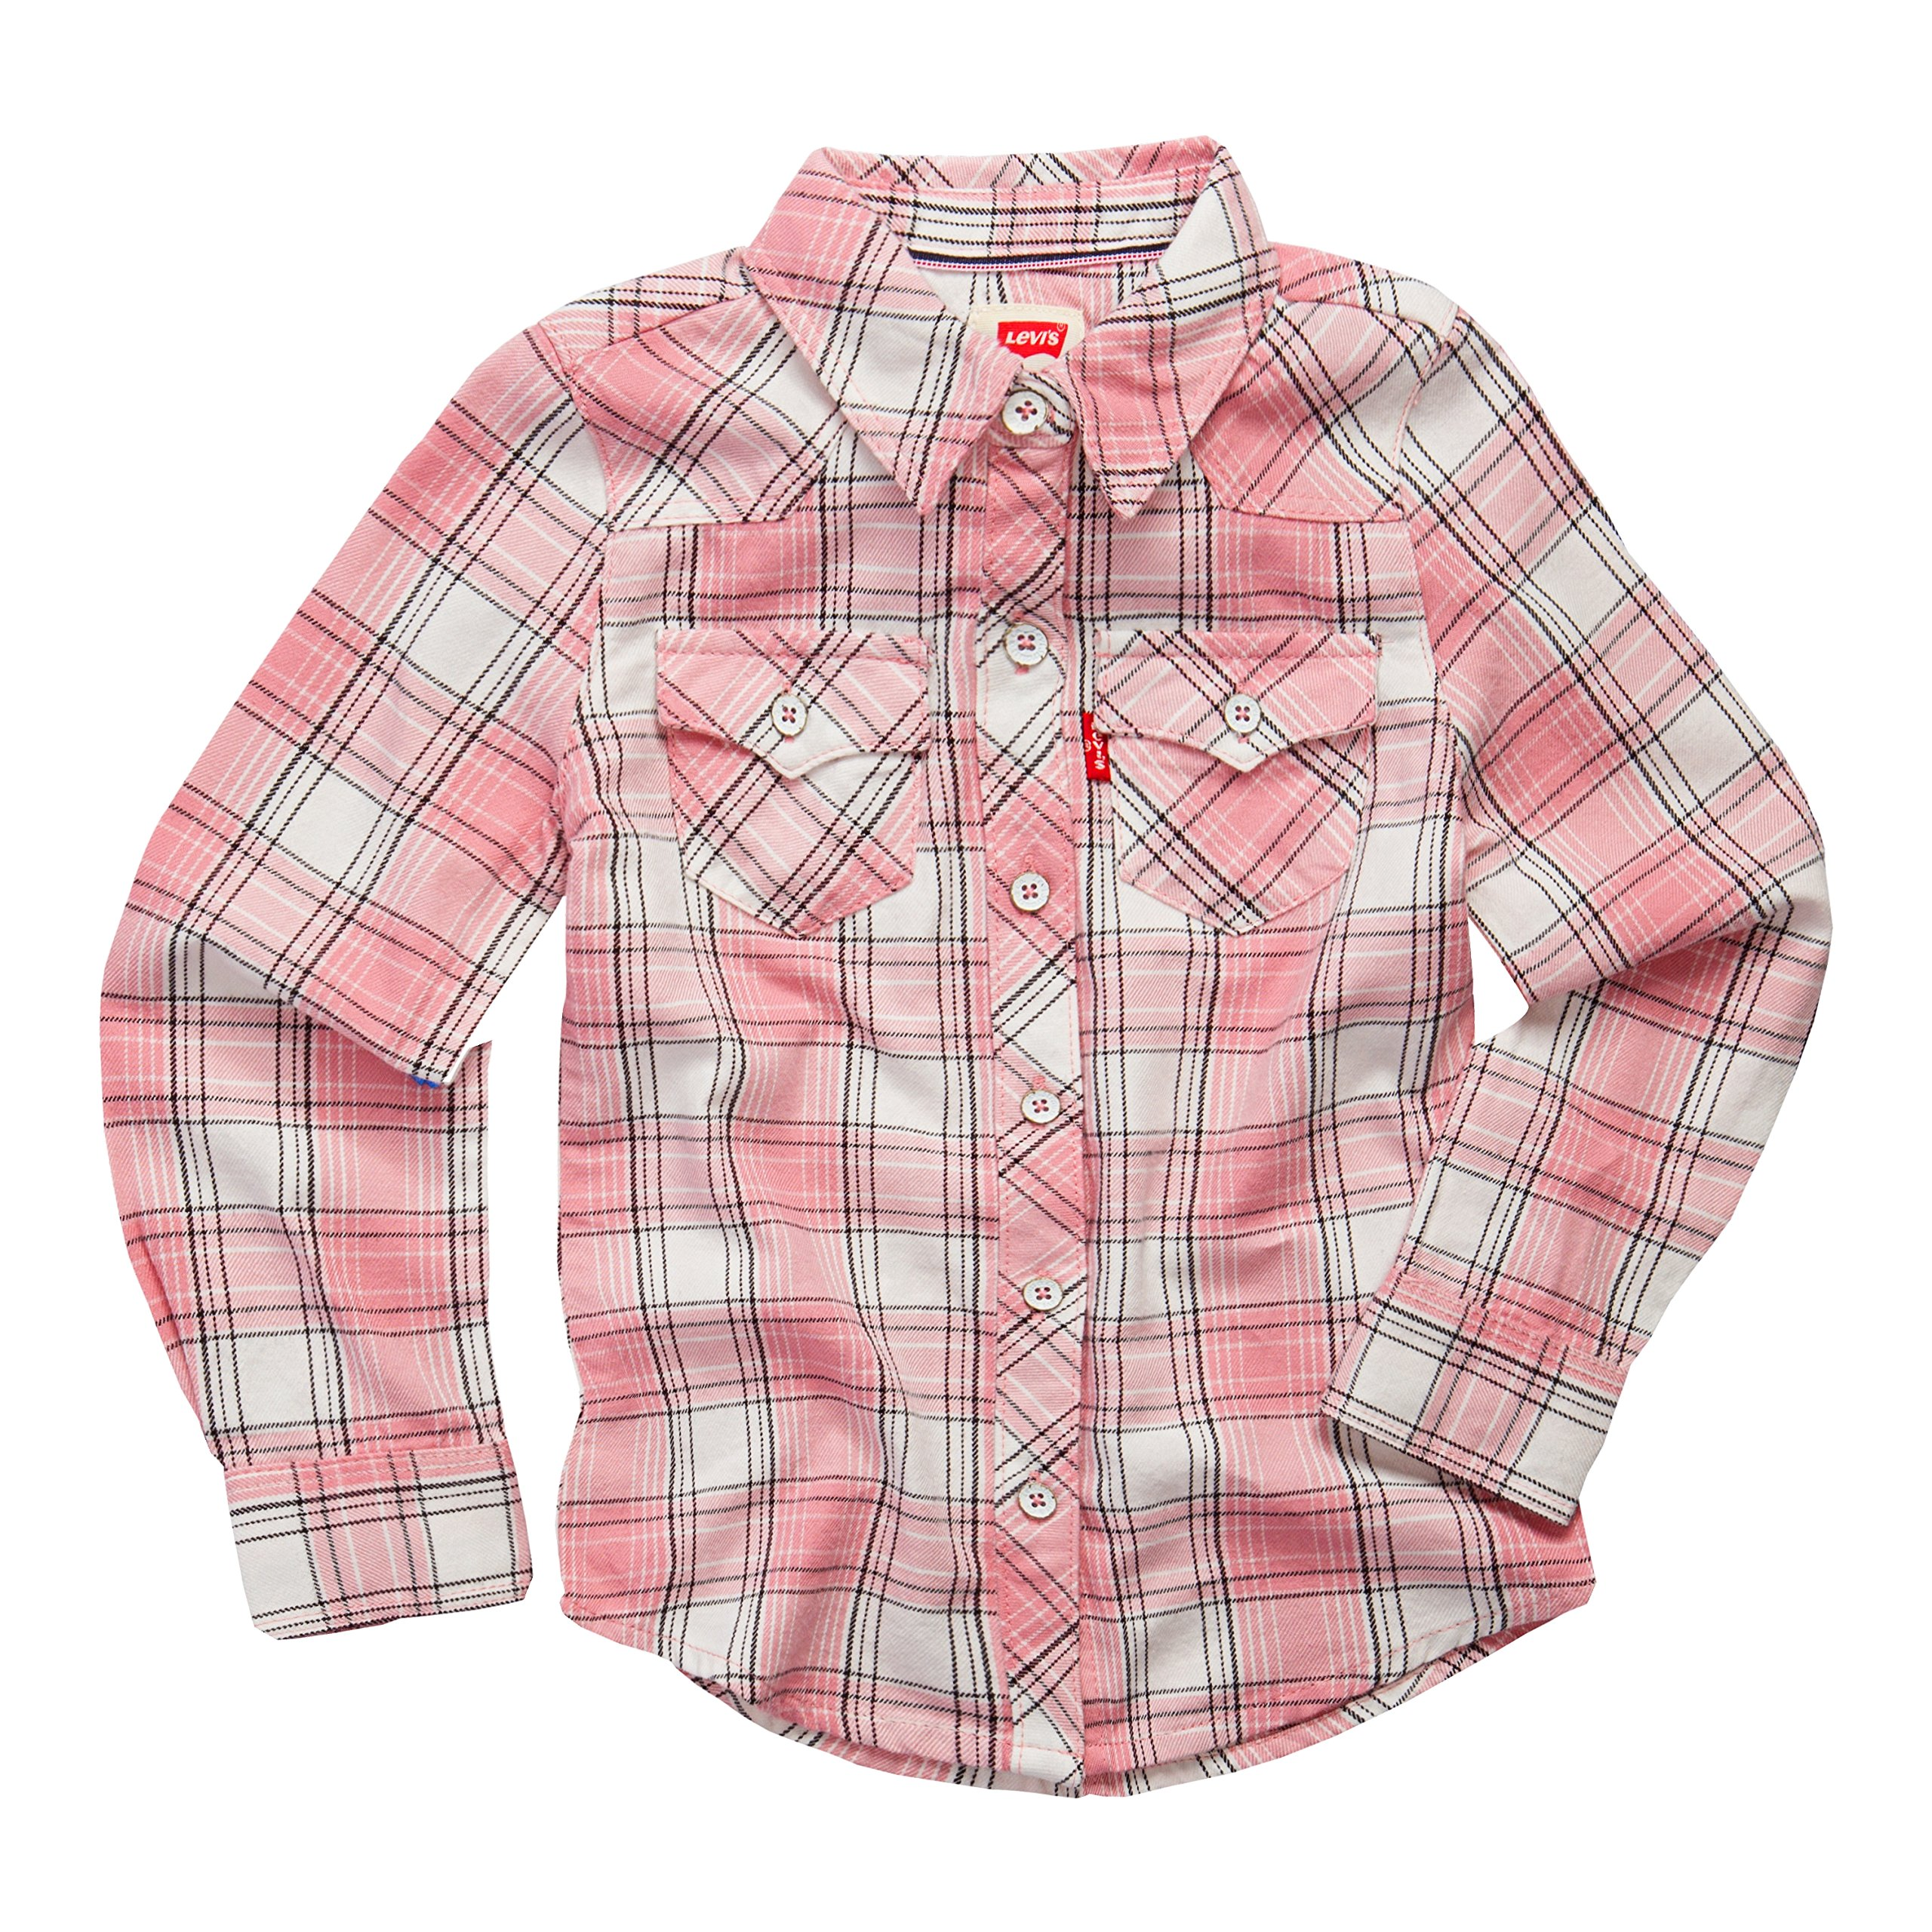 Levi's girls Western Button Up Shirt. Candy Pink 3T